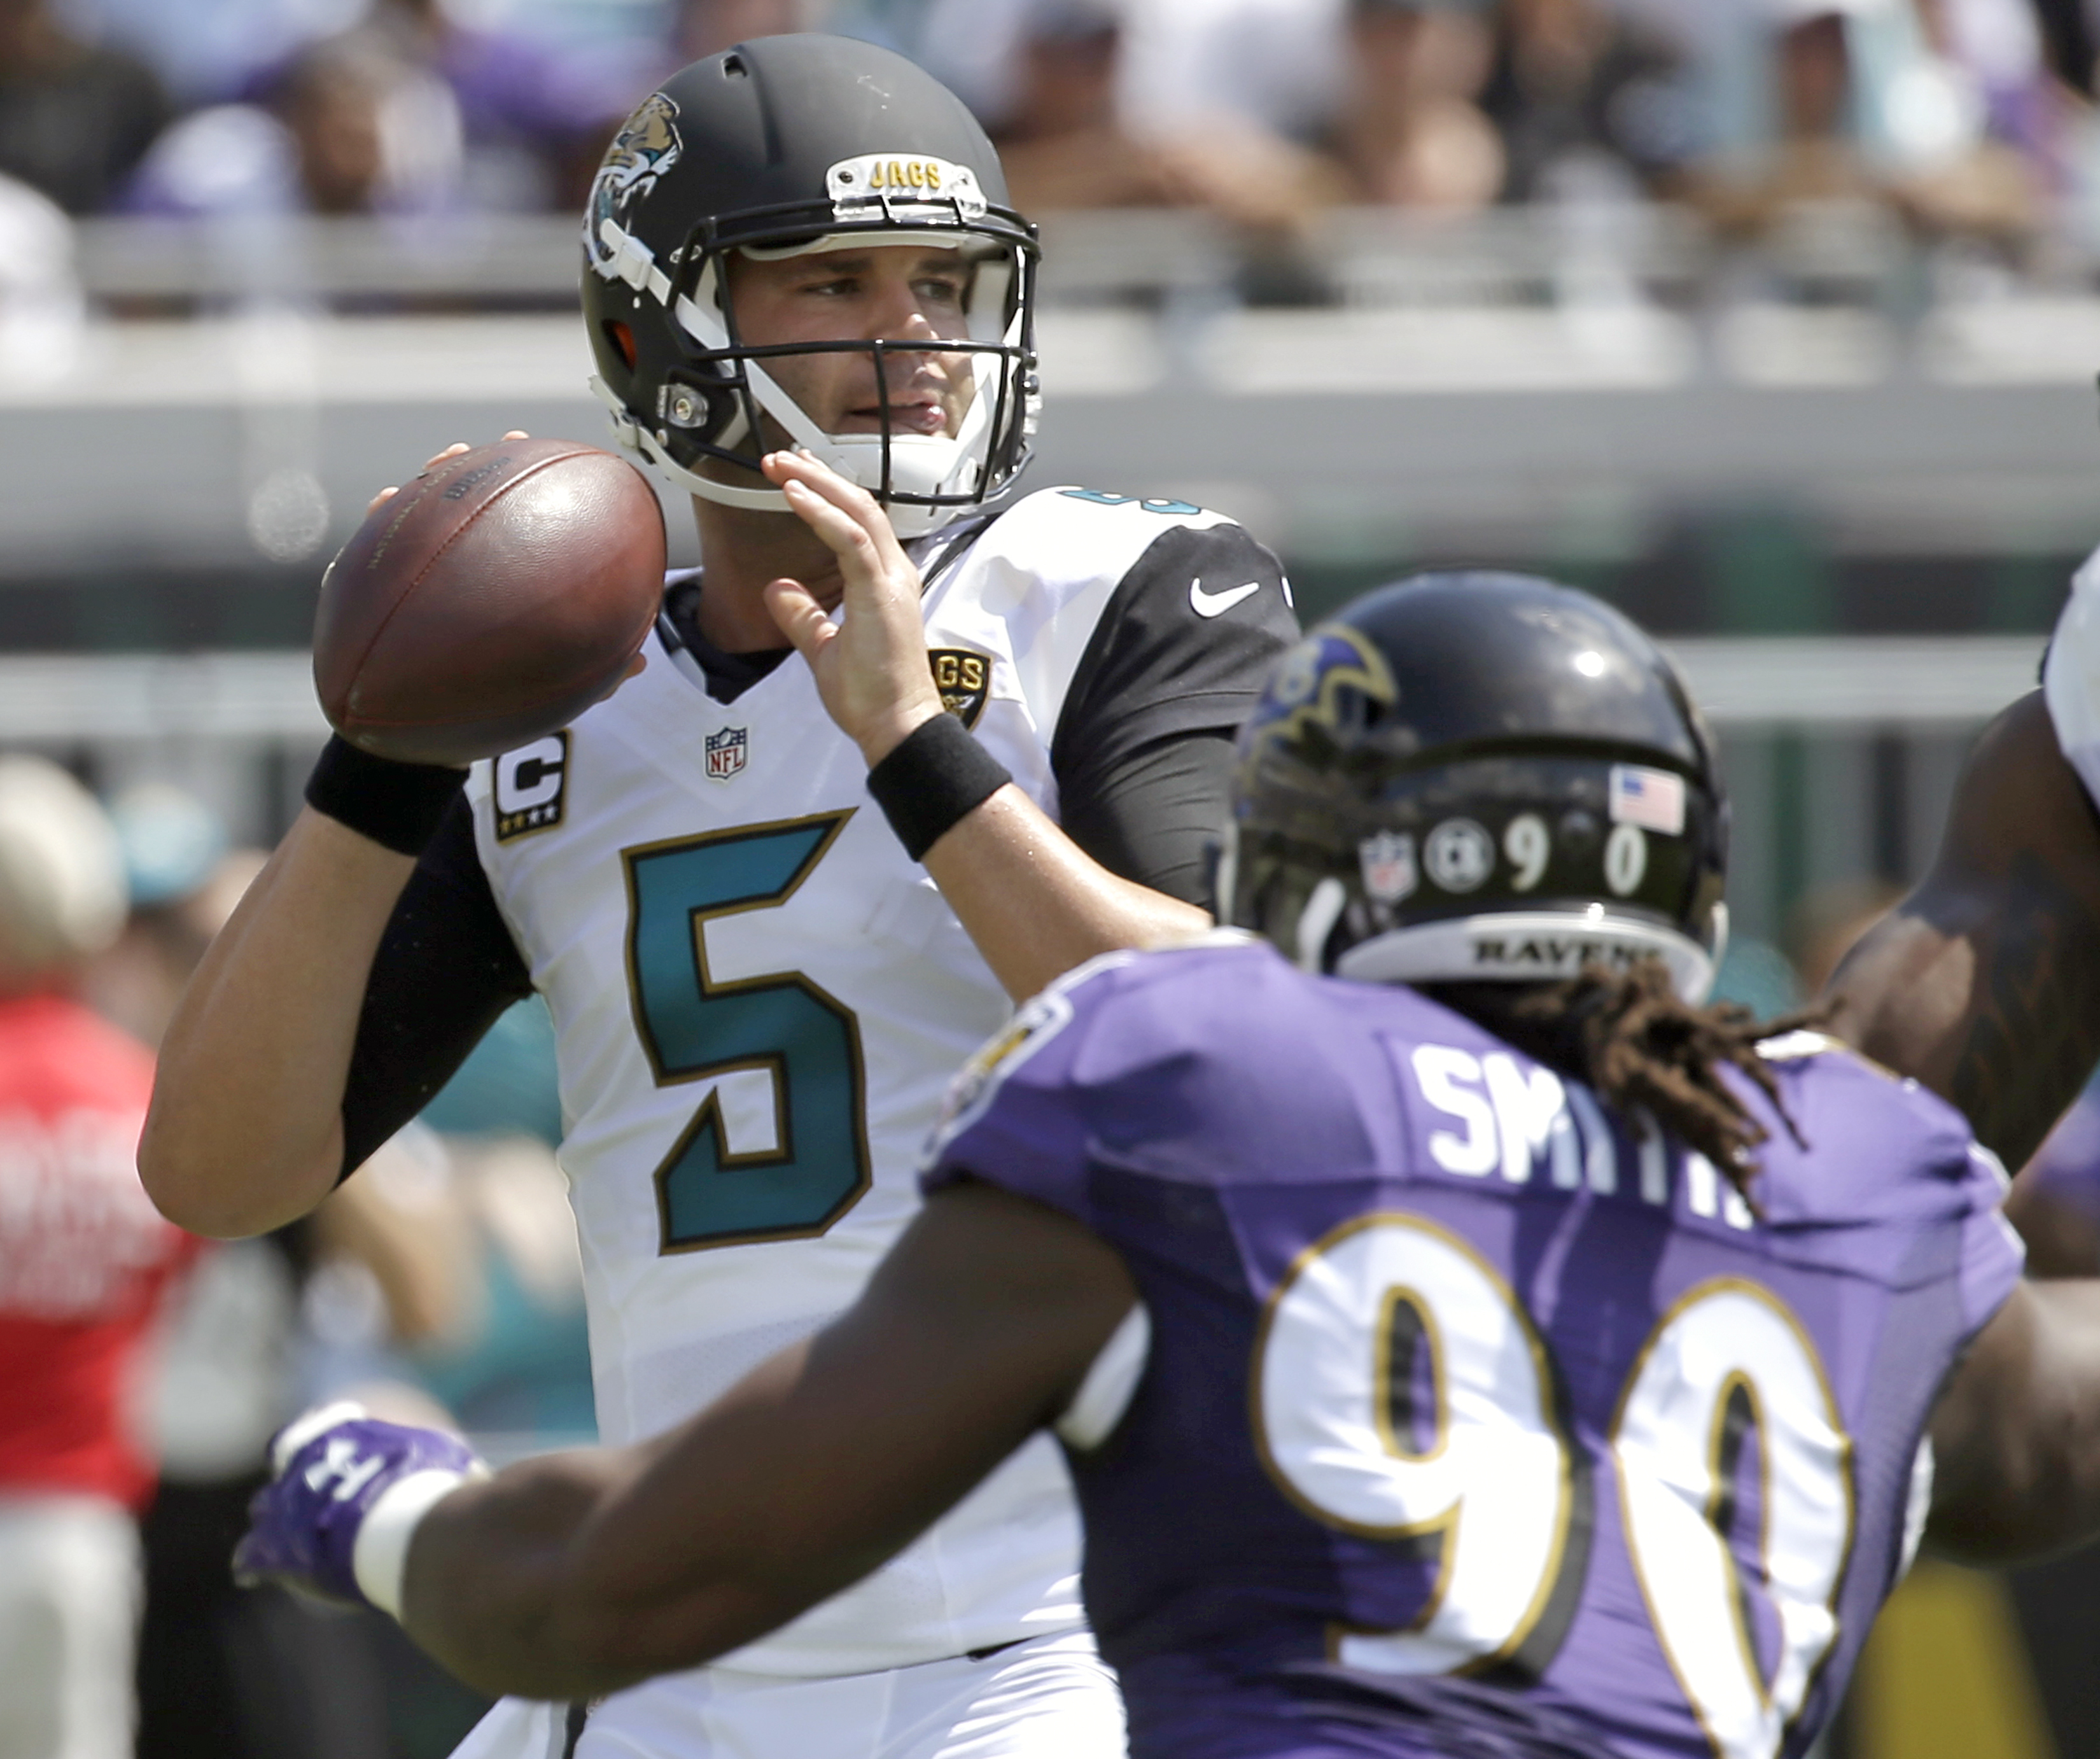 Jacksonville Jaguars quarterback Blake Bortles (5) looks for a receiver as he is pressured by Baltimore Ravens linebacker Za'Darius Smith (90) during the first half of an NFL football game in Jacksonville, Fla., Sunday, Sept. 25, 2016. (AP Photo/John Raou